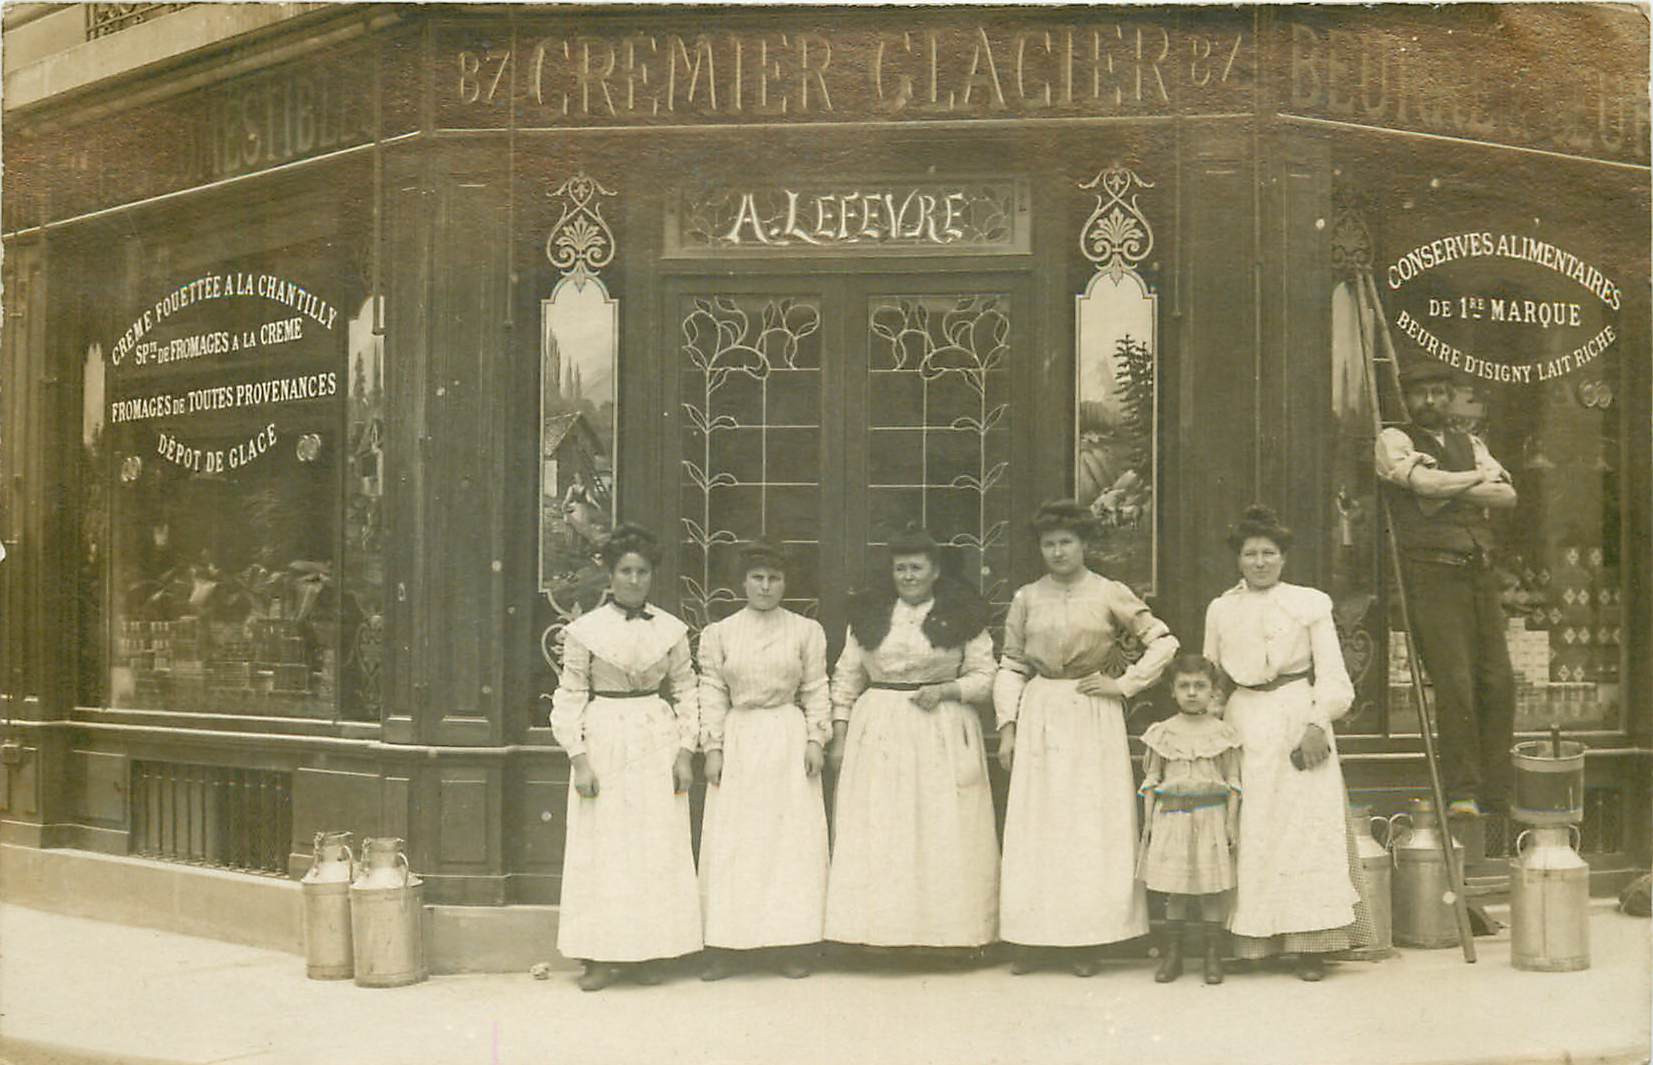 WW PARIS XVI. Crémier Glacier Lefèvre rue de l'Annonciation 1907. Photo carte postale